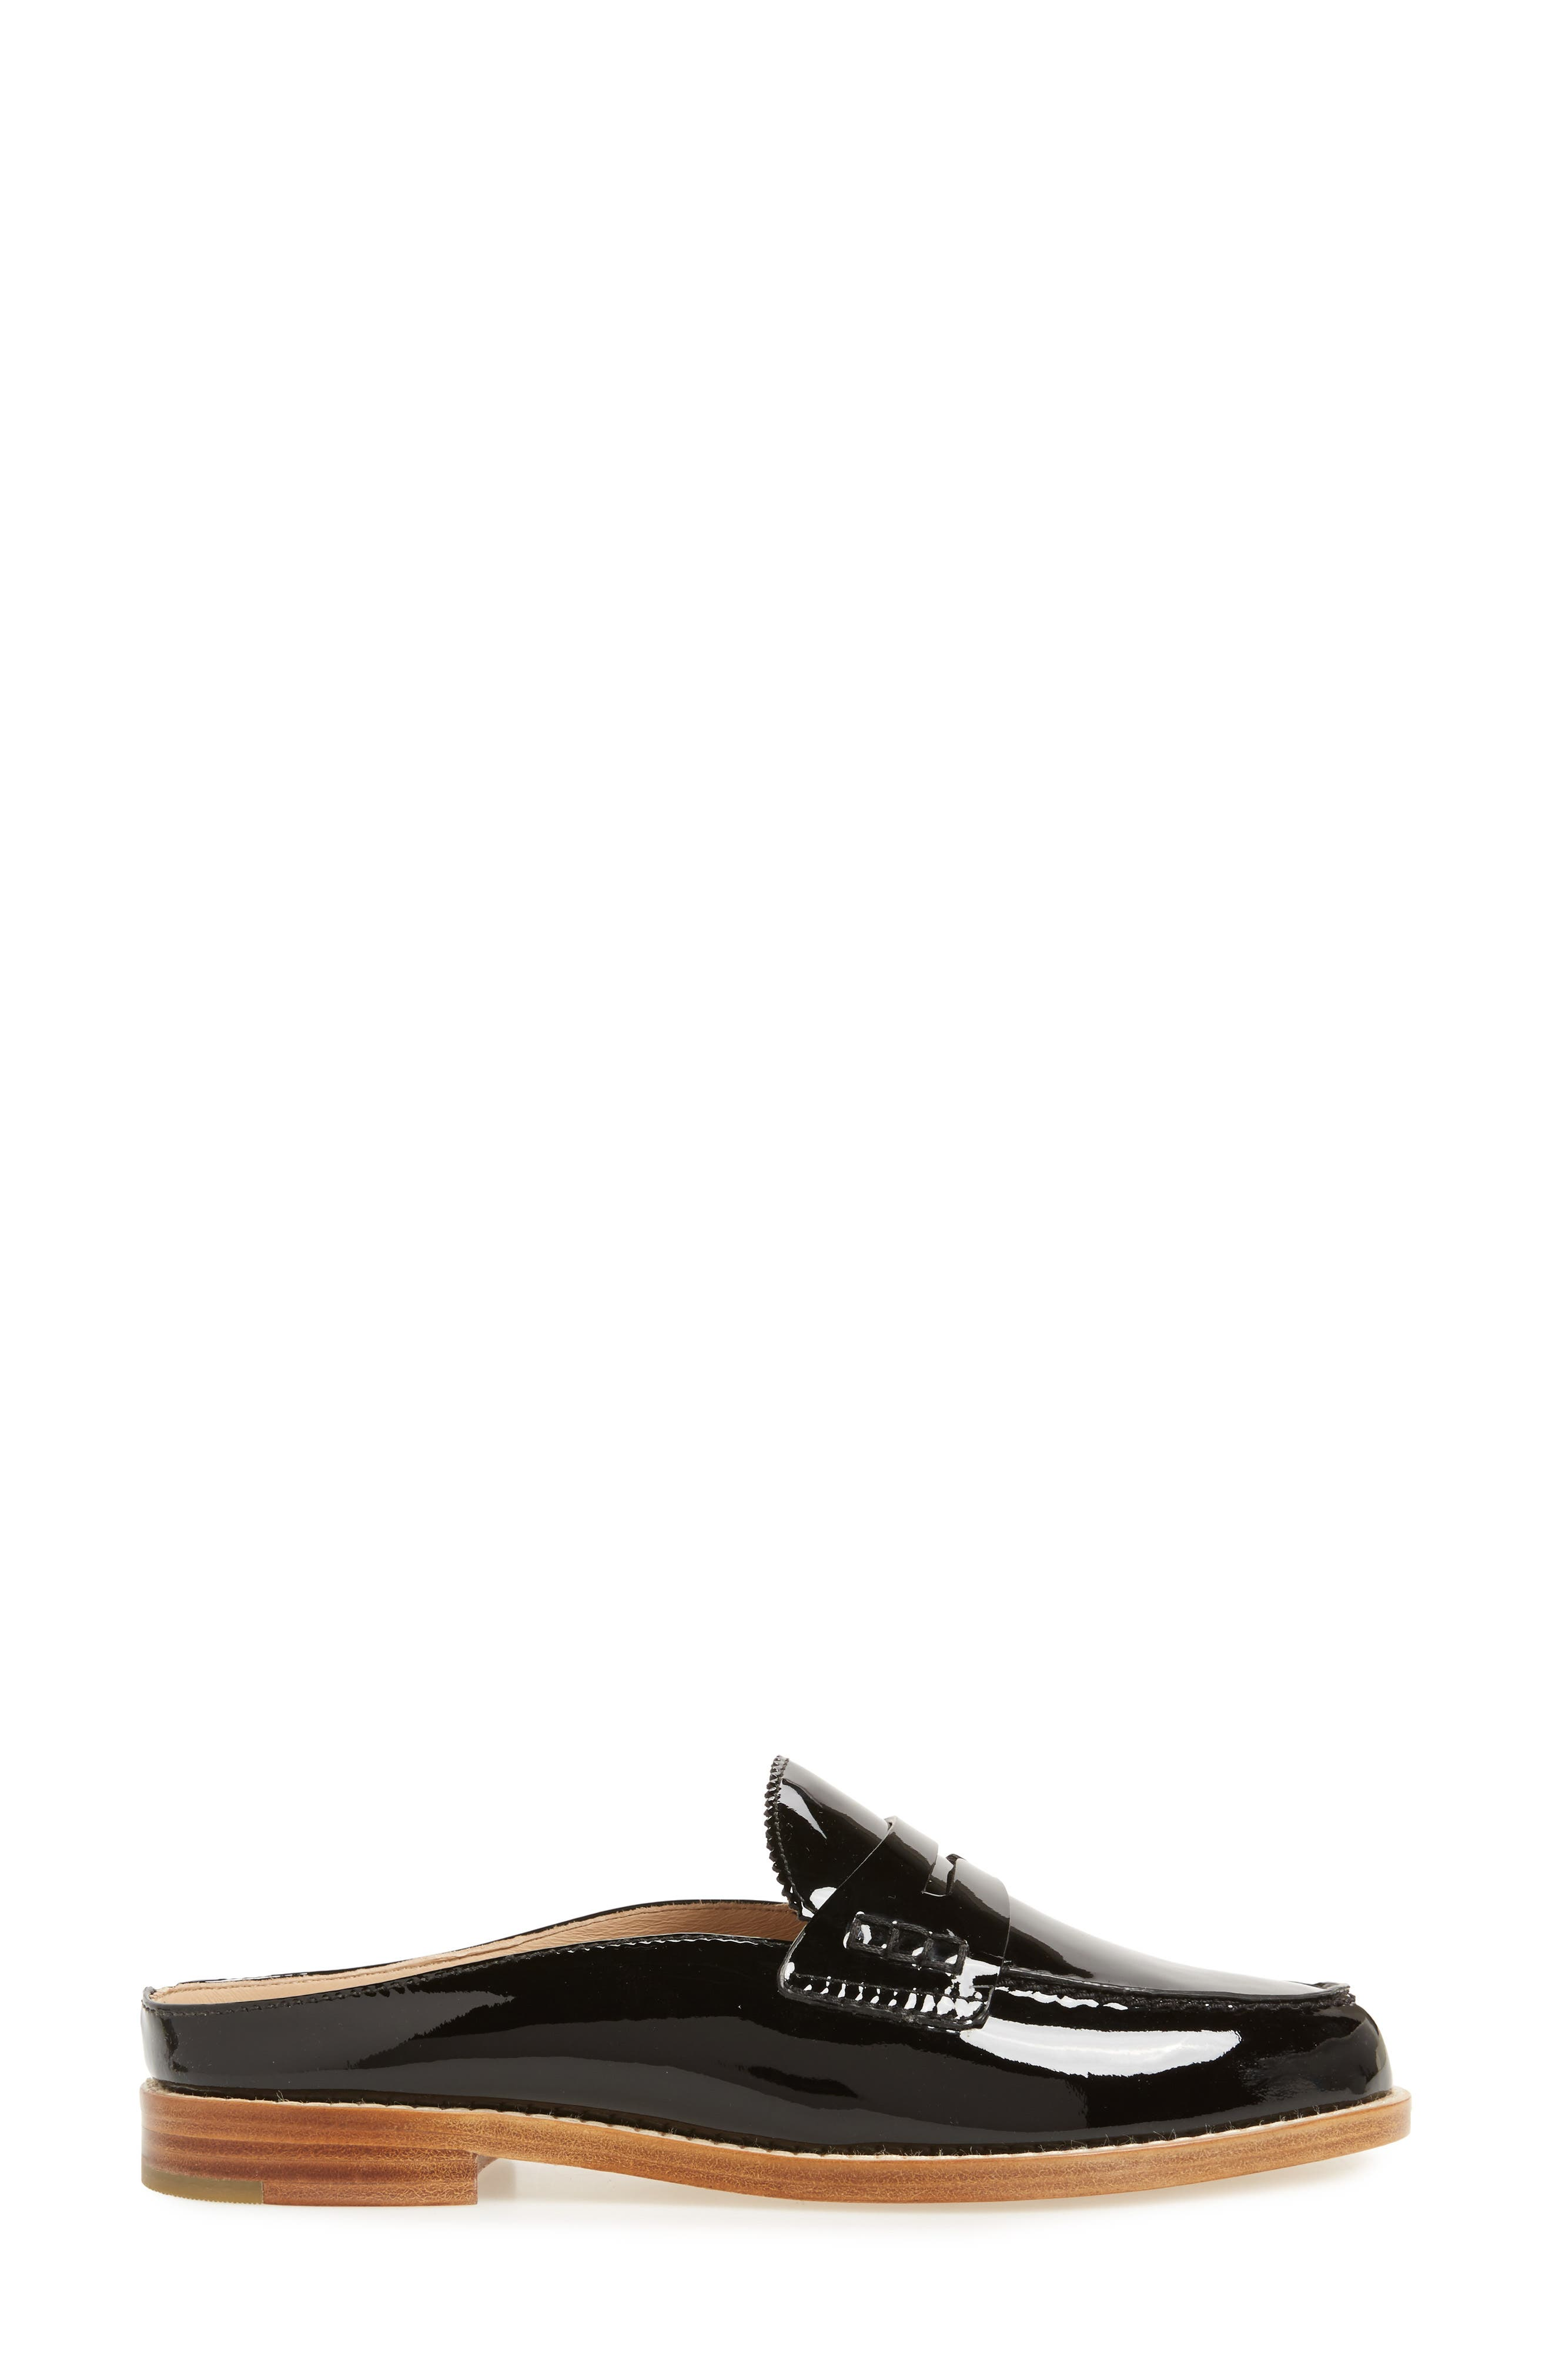 Giada Loafer Mule,                             Alternate thumbnail 3, color,                             BLACK PATENT